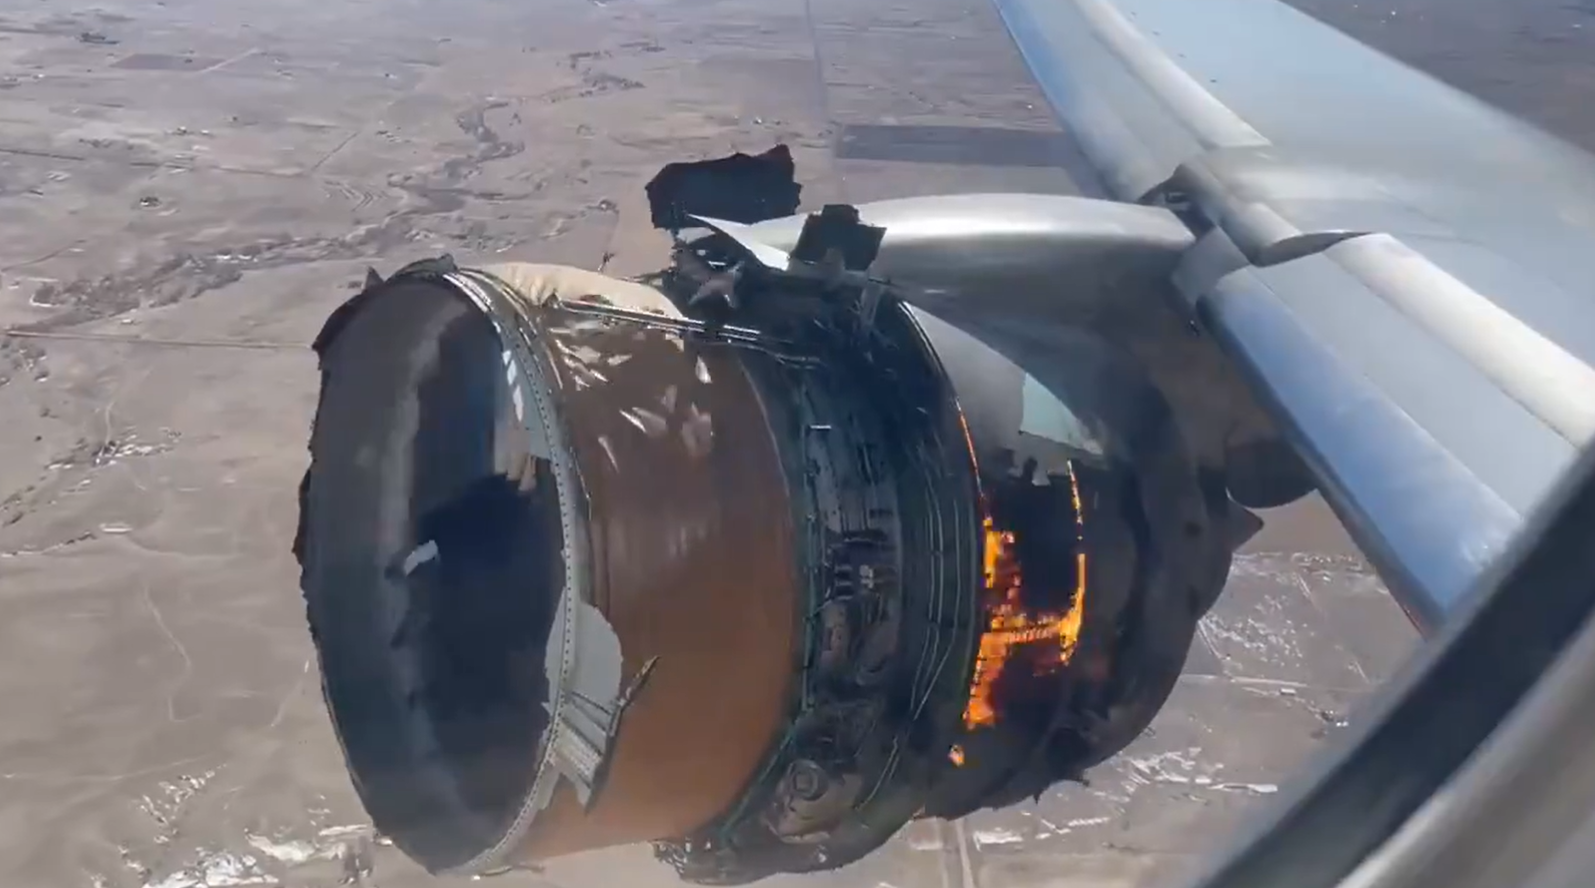 Airplane engine caught on fire shortly after takeoff